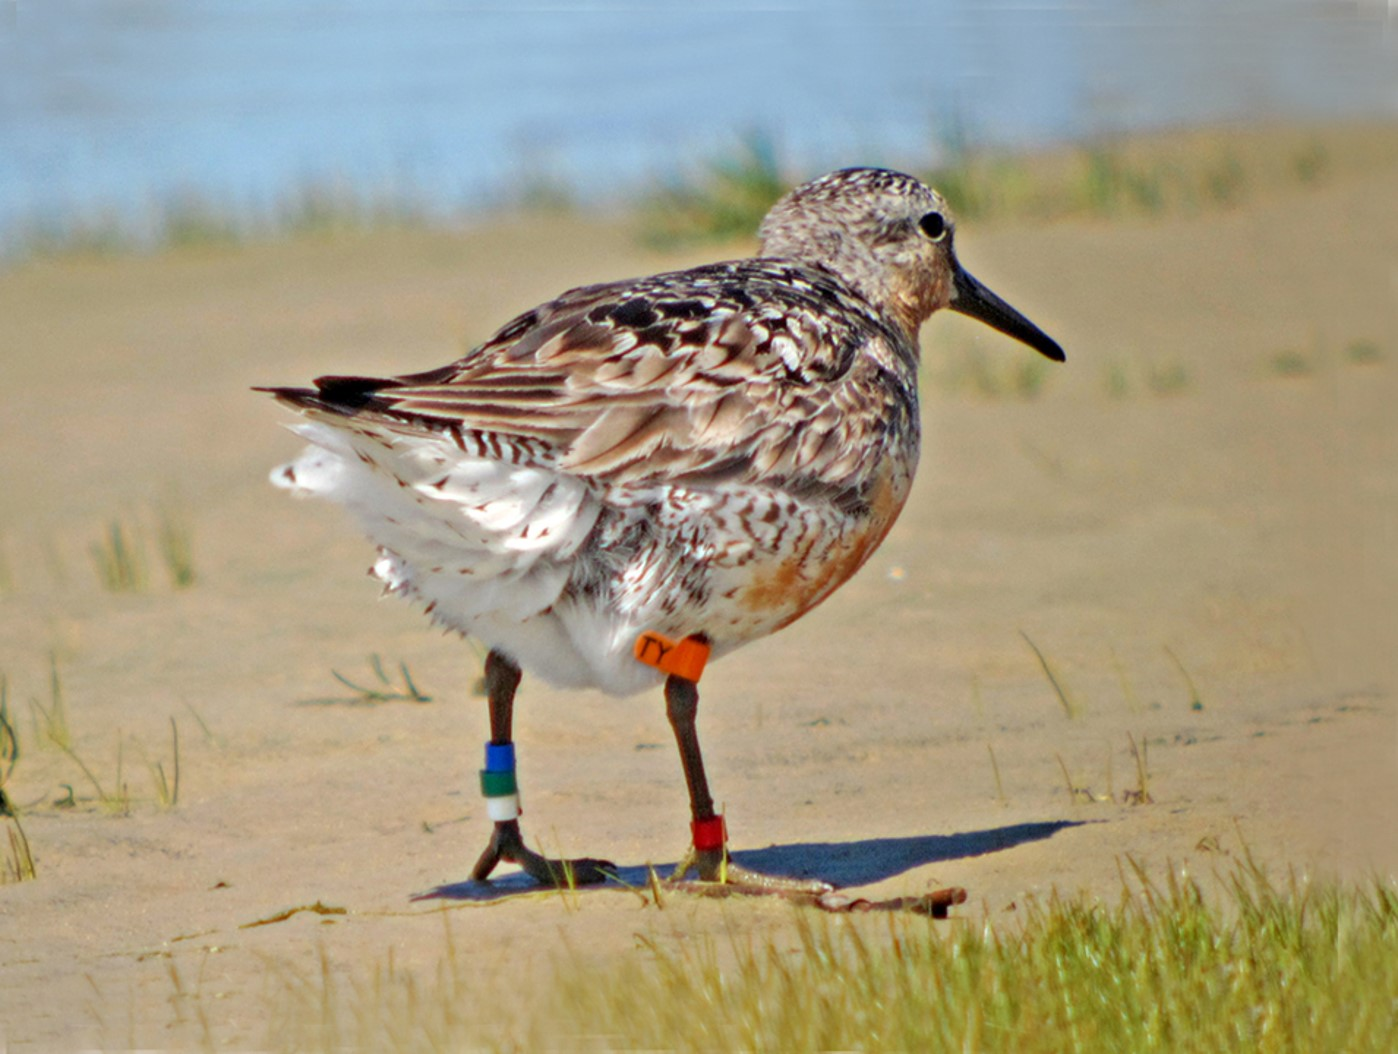 Red Knot TY was banded in Argentina and has been seen in James Bay many times. Photo courtesy Jean Iron.